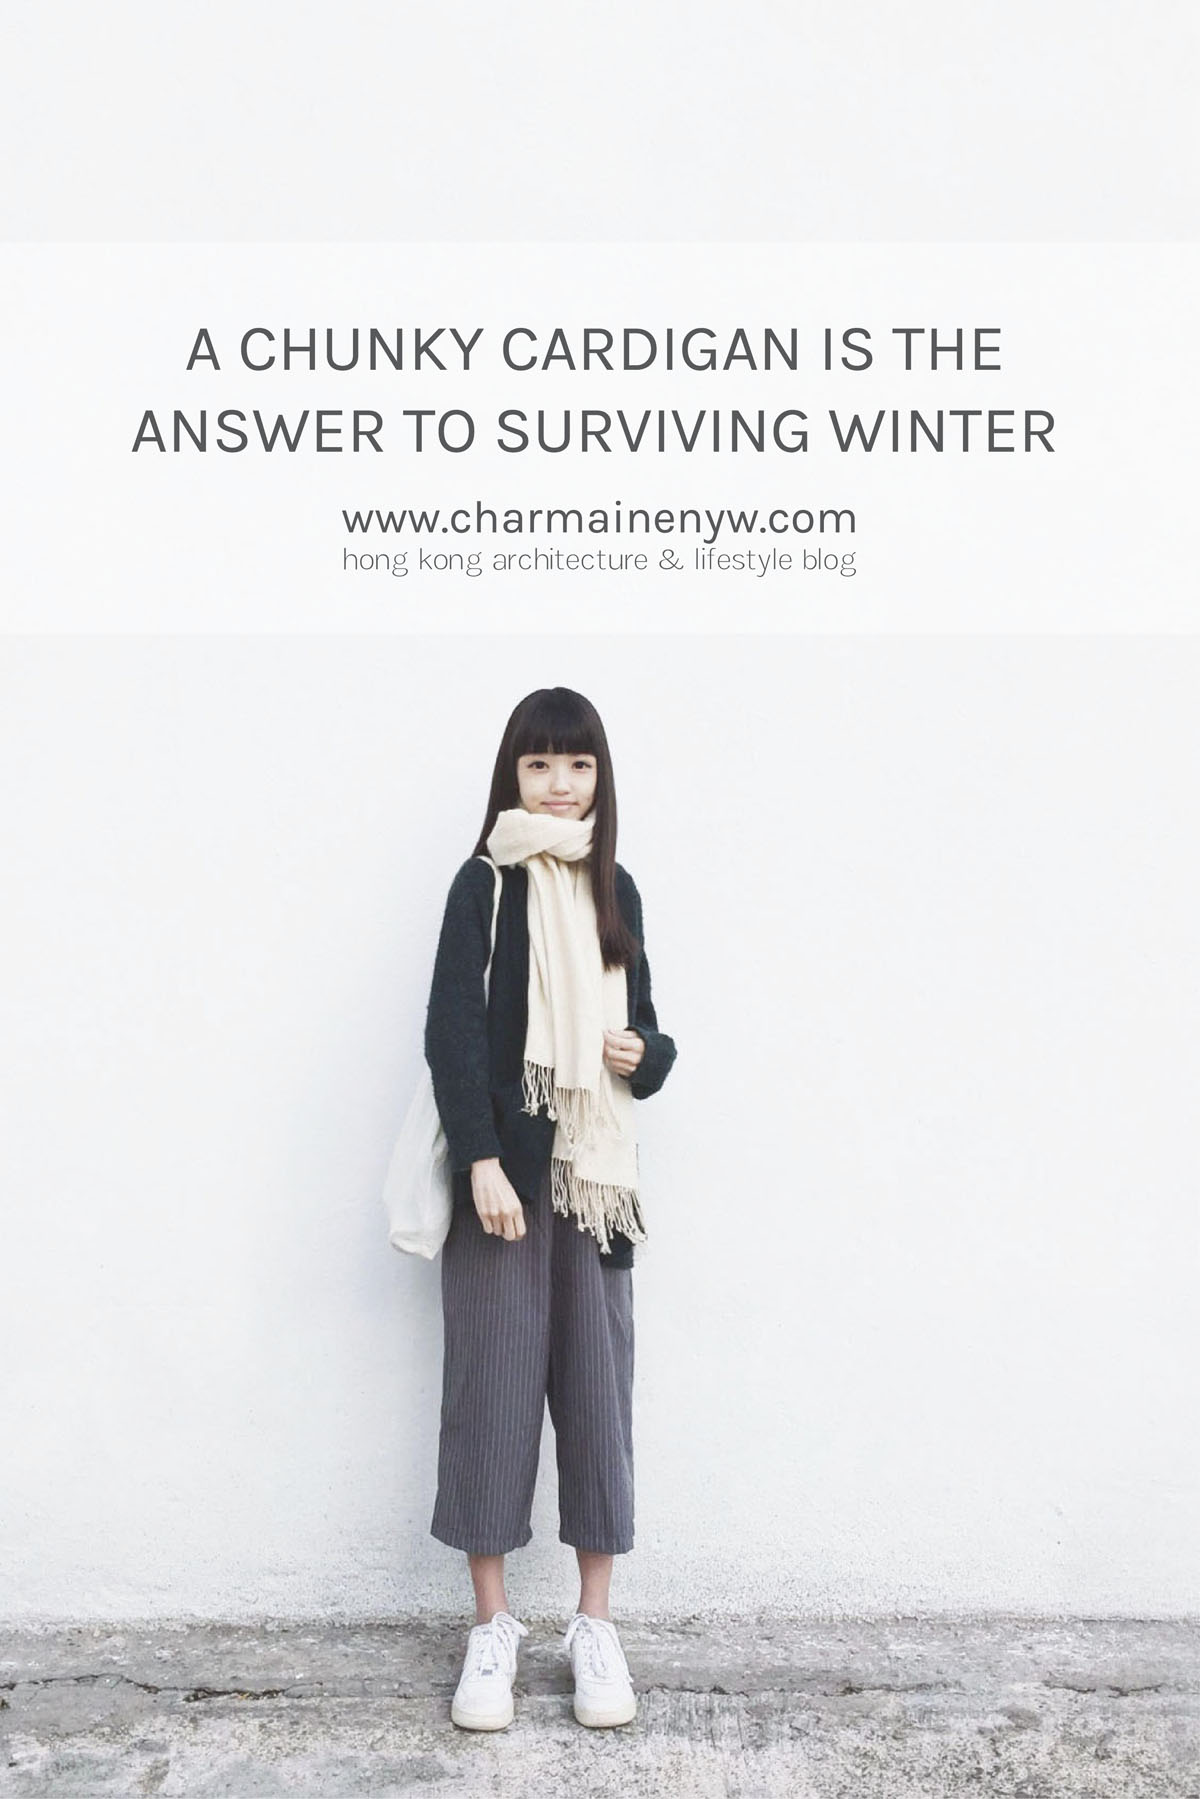 A chunky cardigan is sure to warm you up in winter